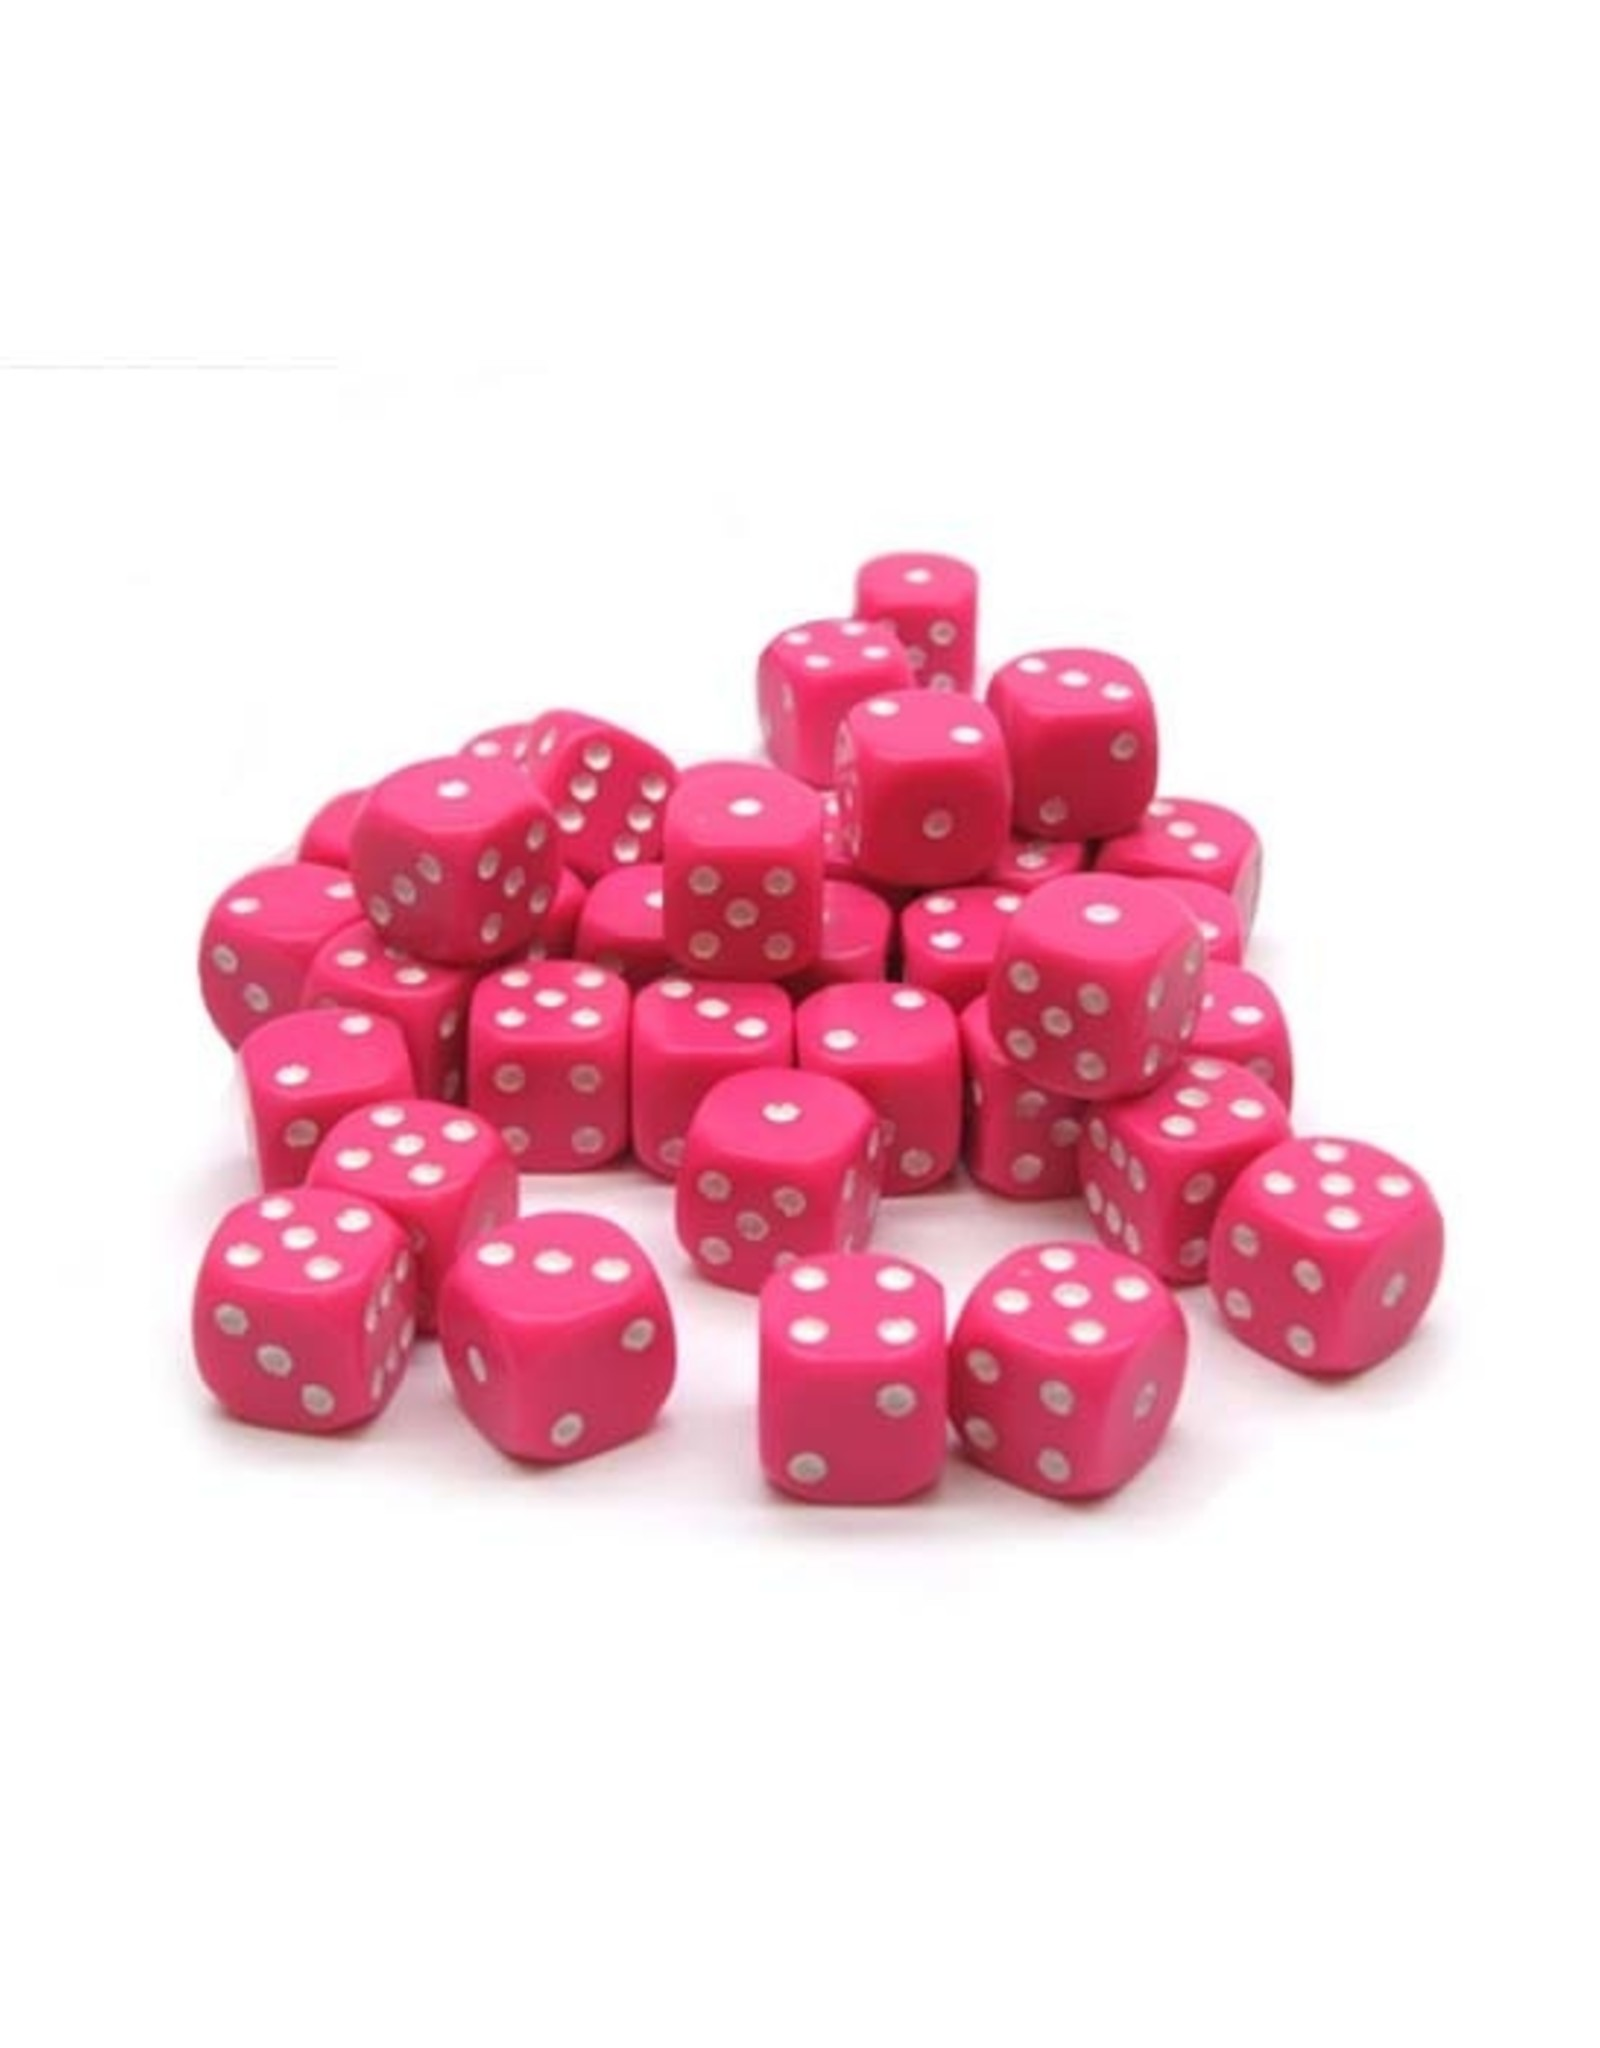 Chessex Chessex: 12mm D6 - Opaque - Pink w/ White